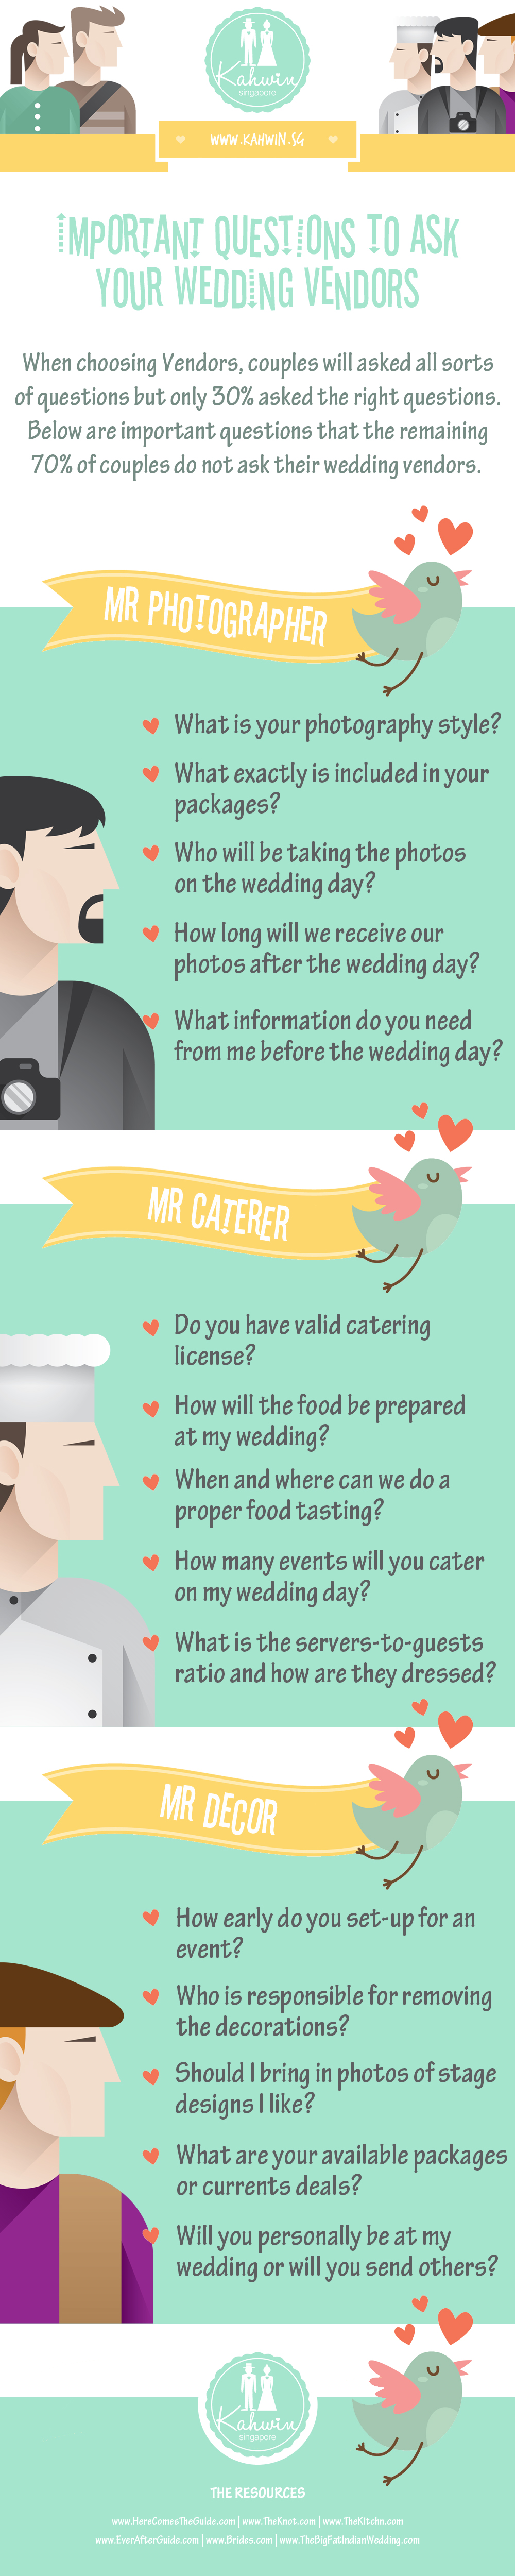 Malay Wedding Vendors Questions